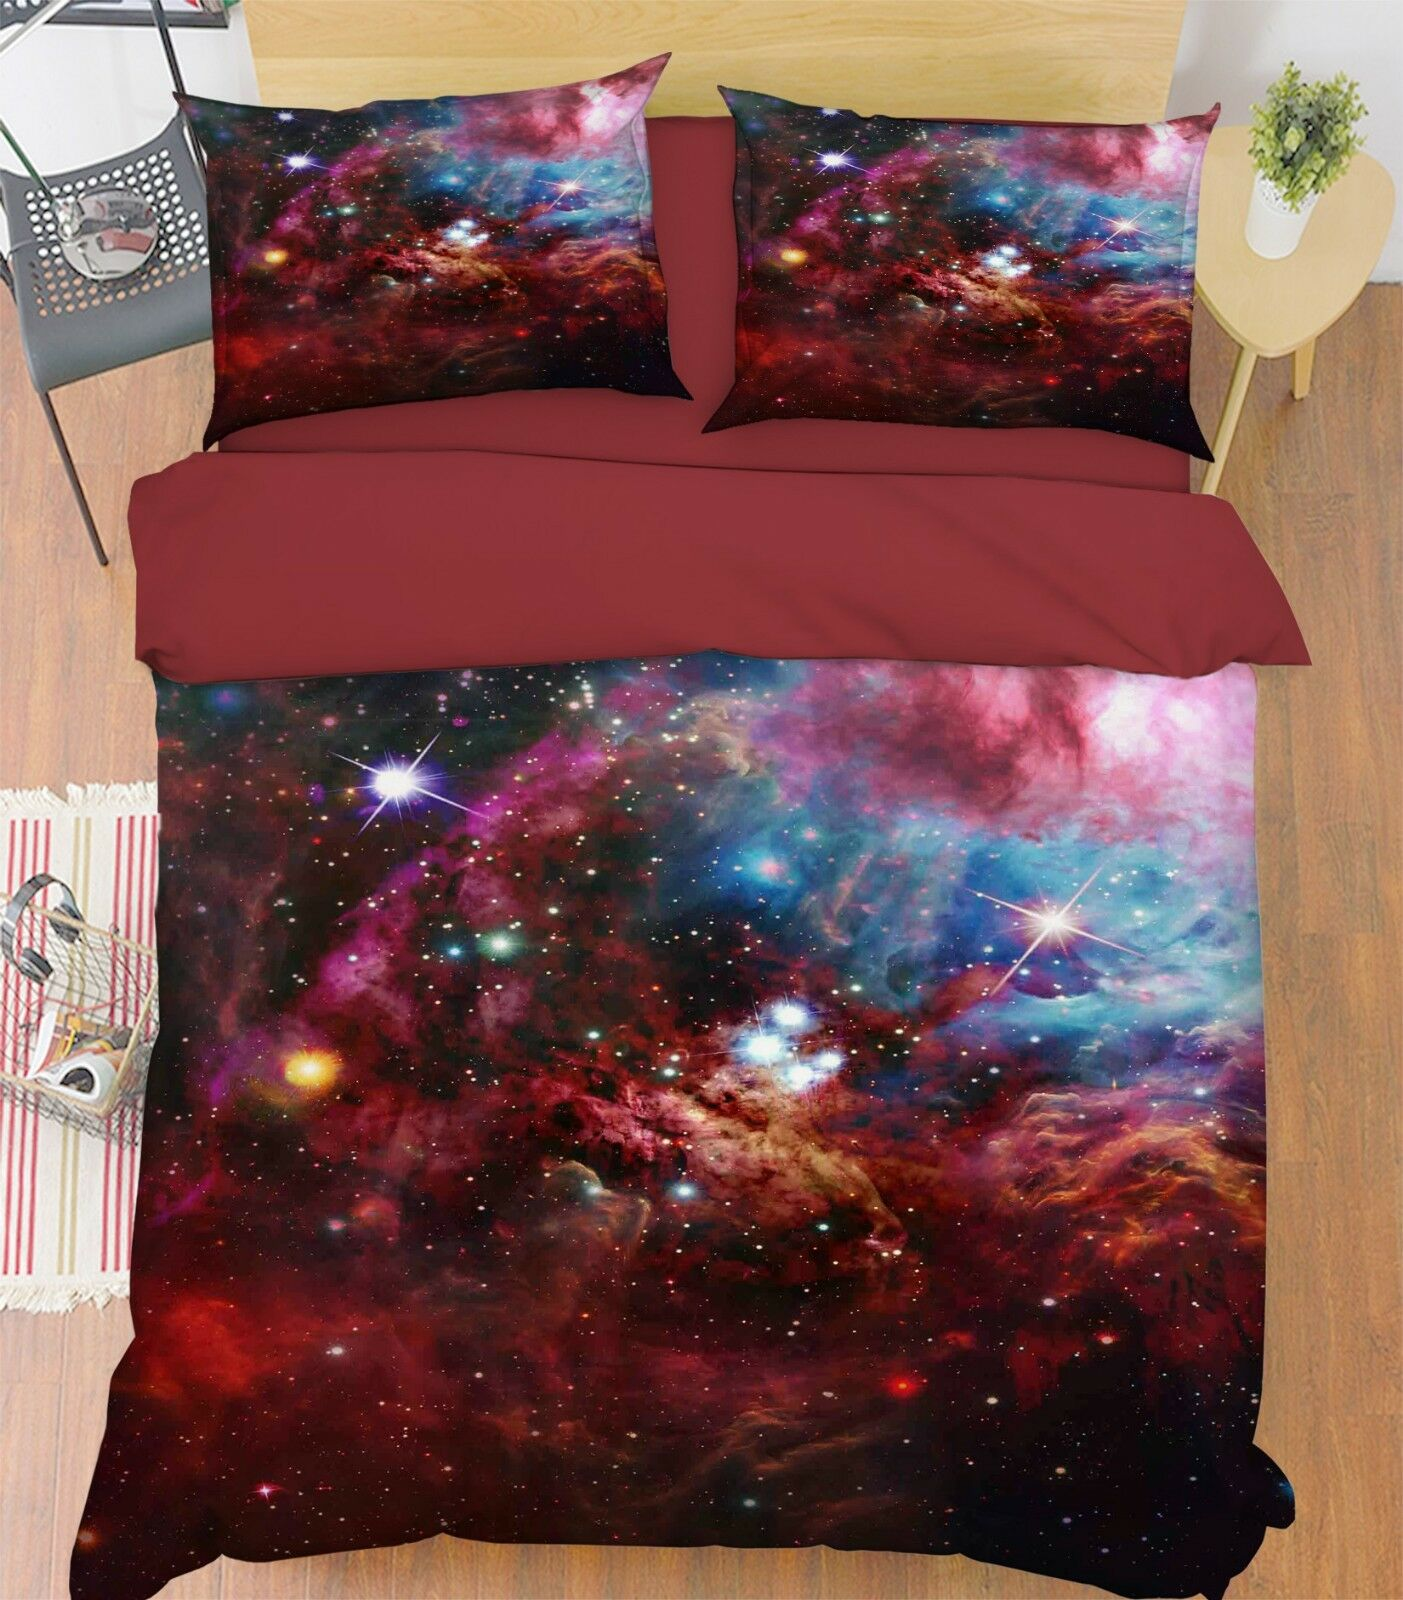 3D Starry Sky Cloud8 Bed Pillowcases Quilt Duvet Cover Set Single Queen AU Carly